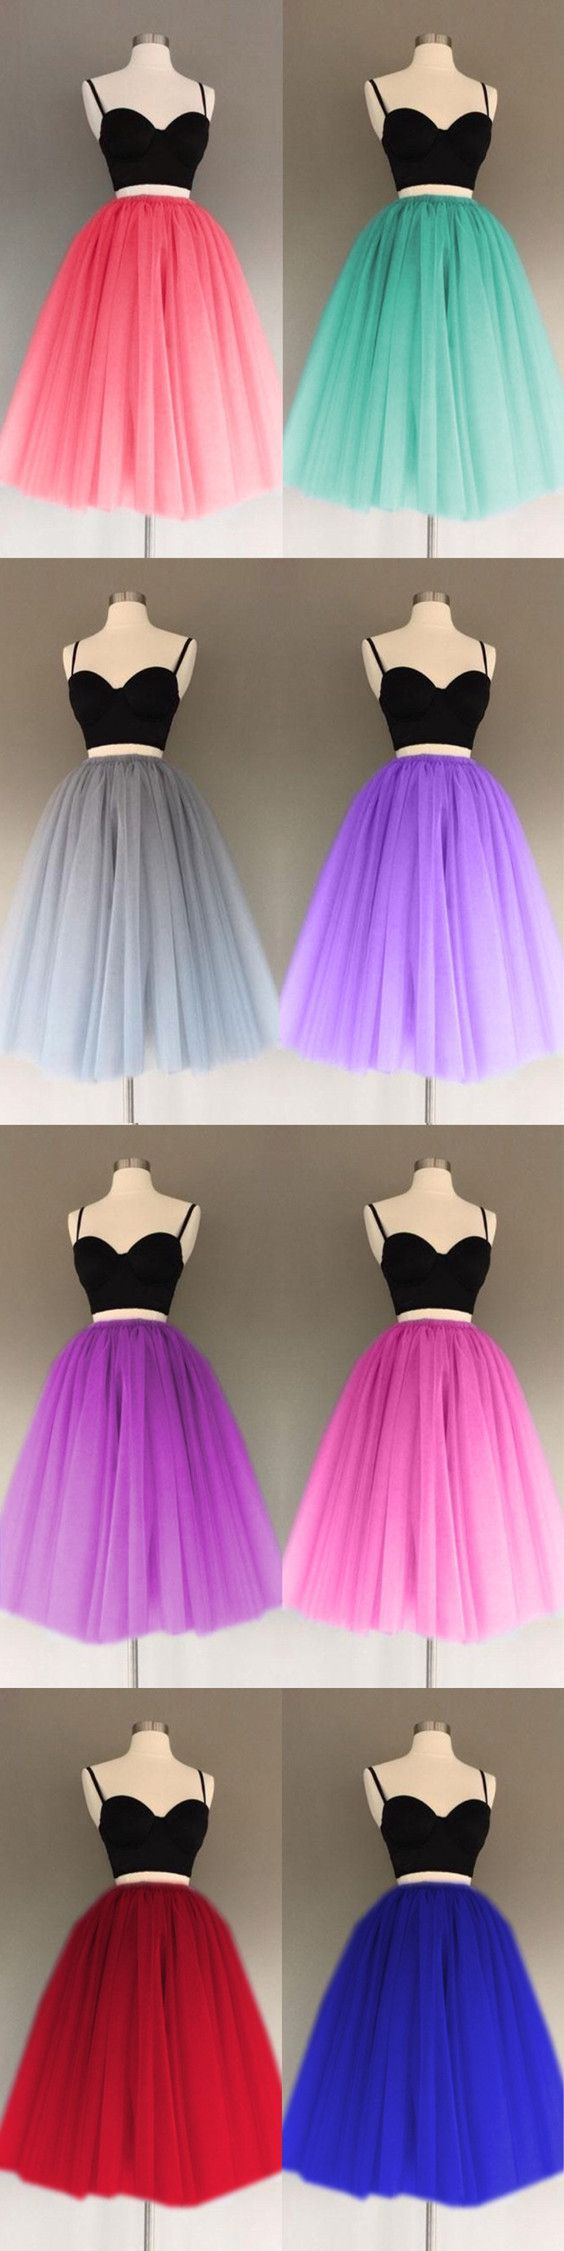 A Line Two Piece Homecoming Dresses Short Tulle Prom Gowns 2